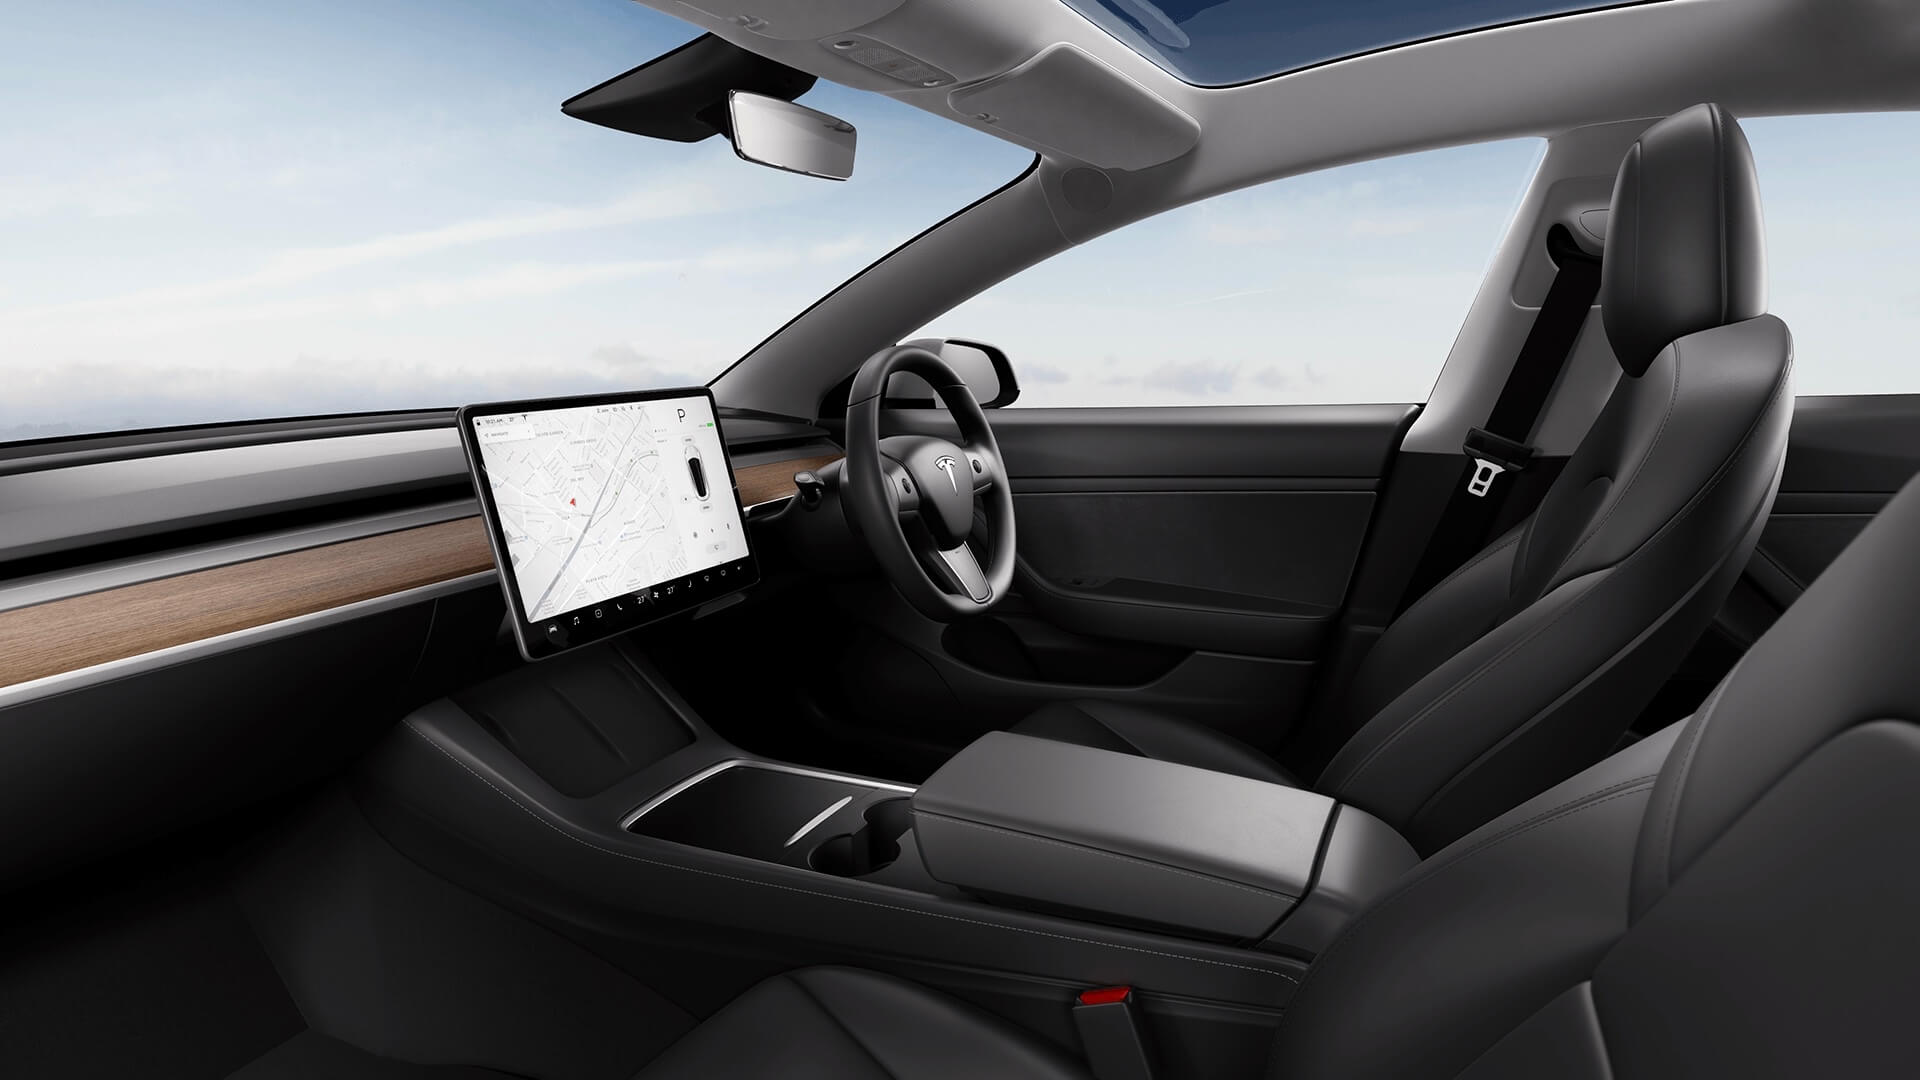 2021 Tesla Model 3 interieur dashboard